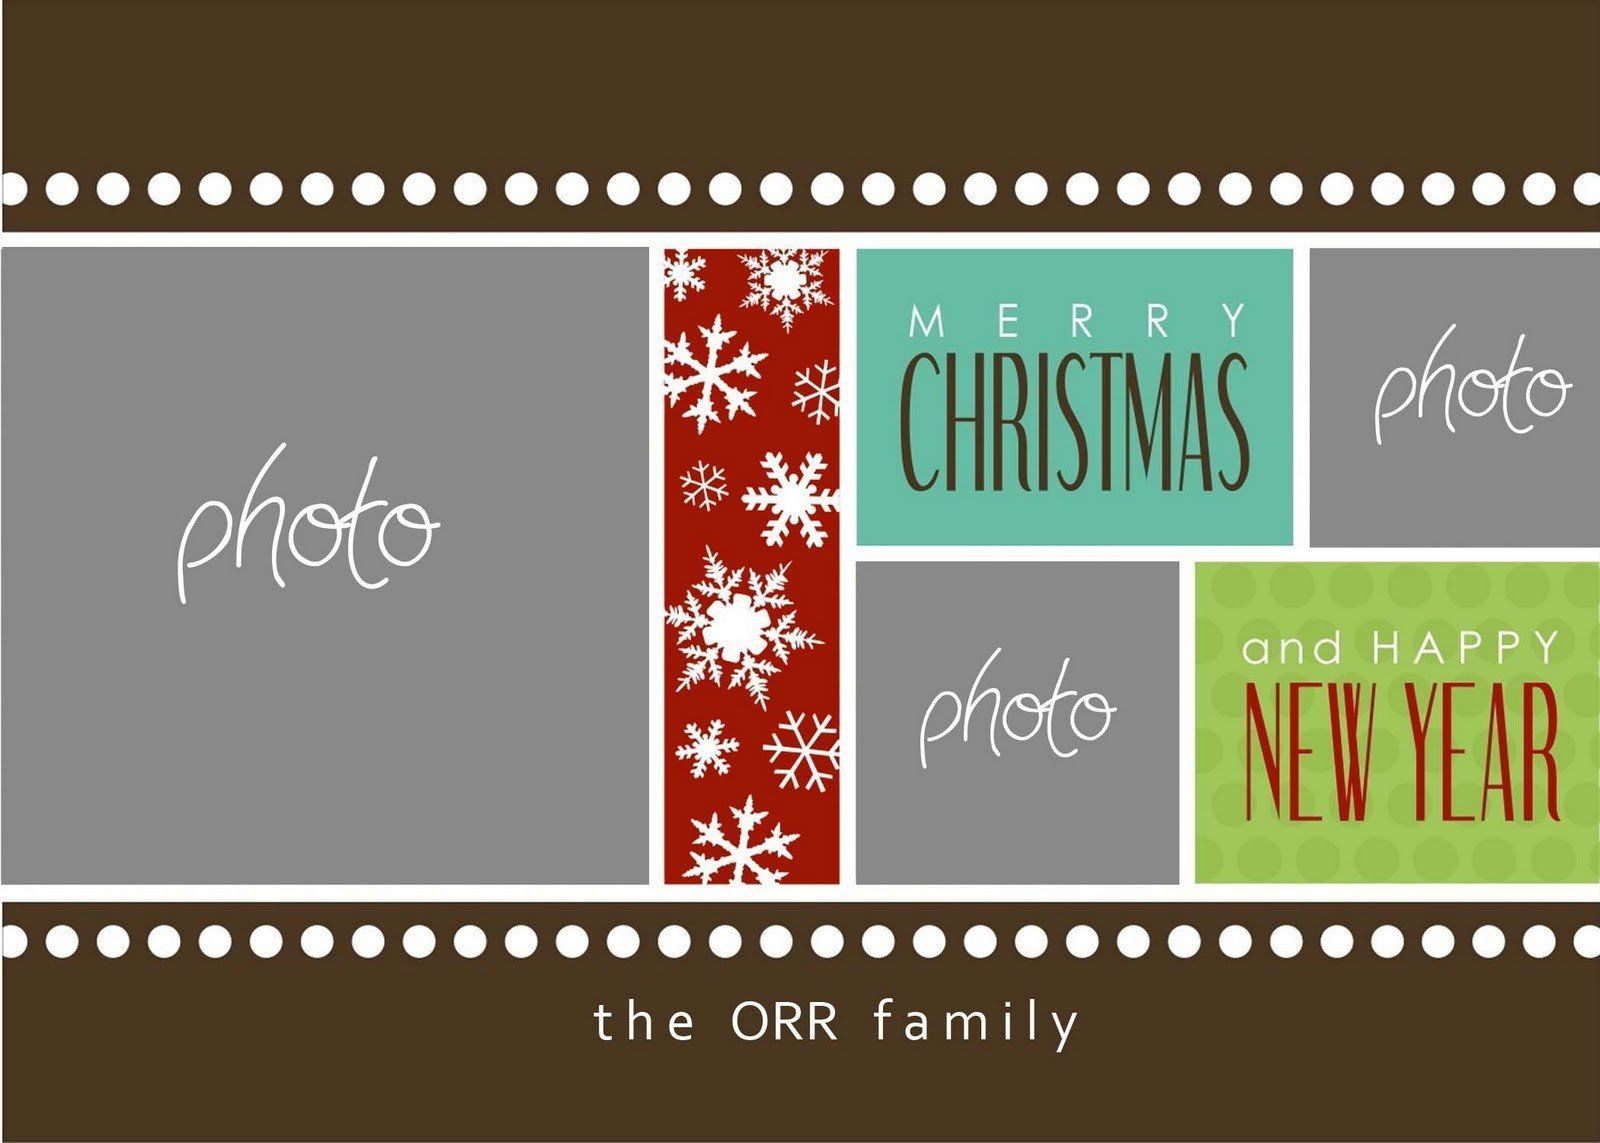 Christmas Card Template Photoshop Free Psd Template File Page 15 Newdesignfile Holiday Card Template Photoshop Christmas Card Template Christmas Card Template